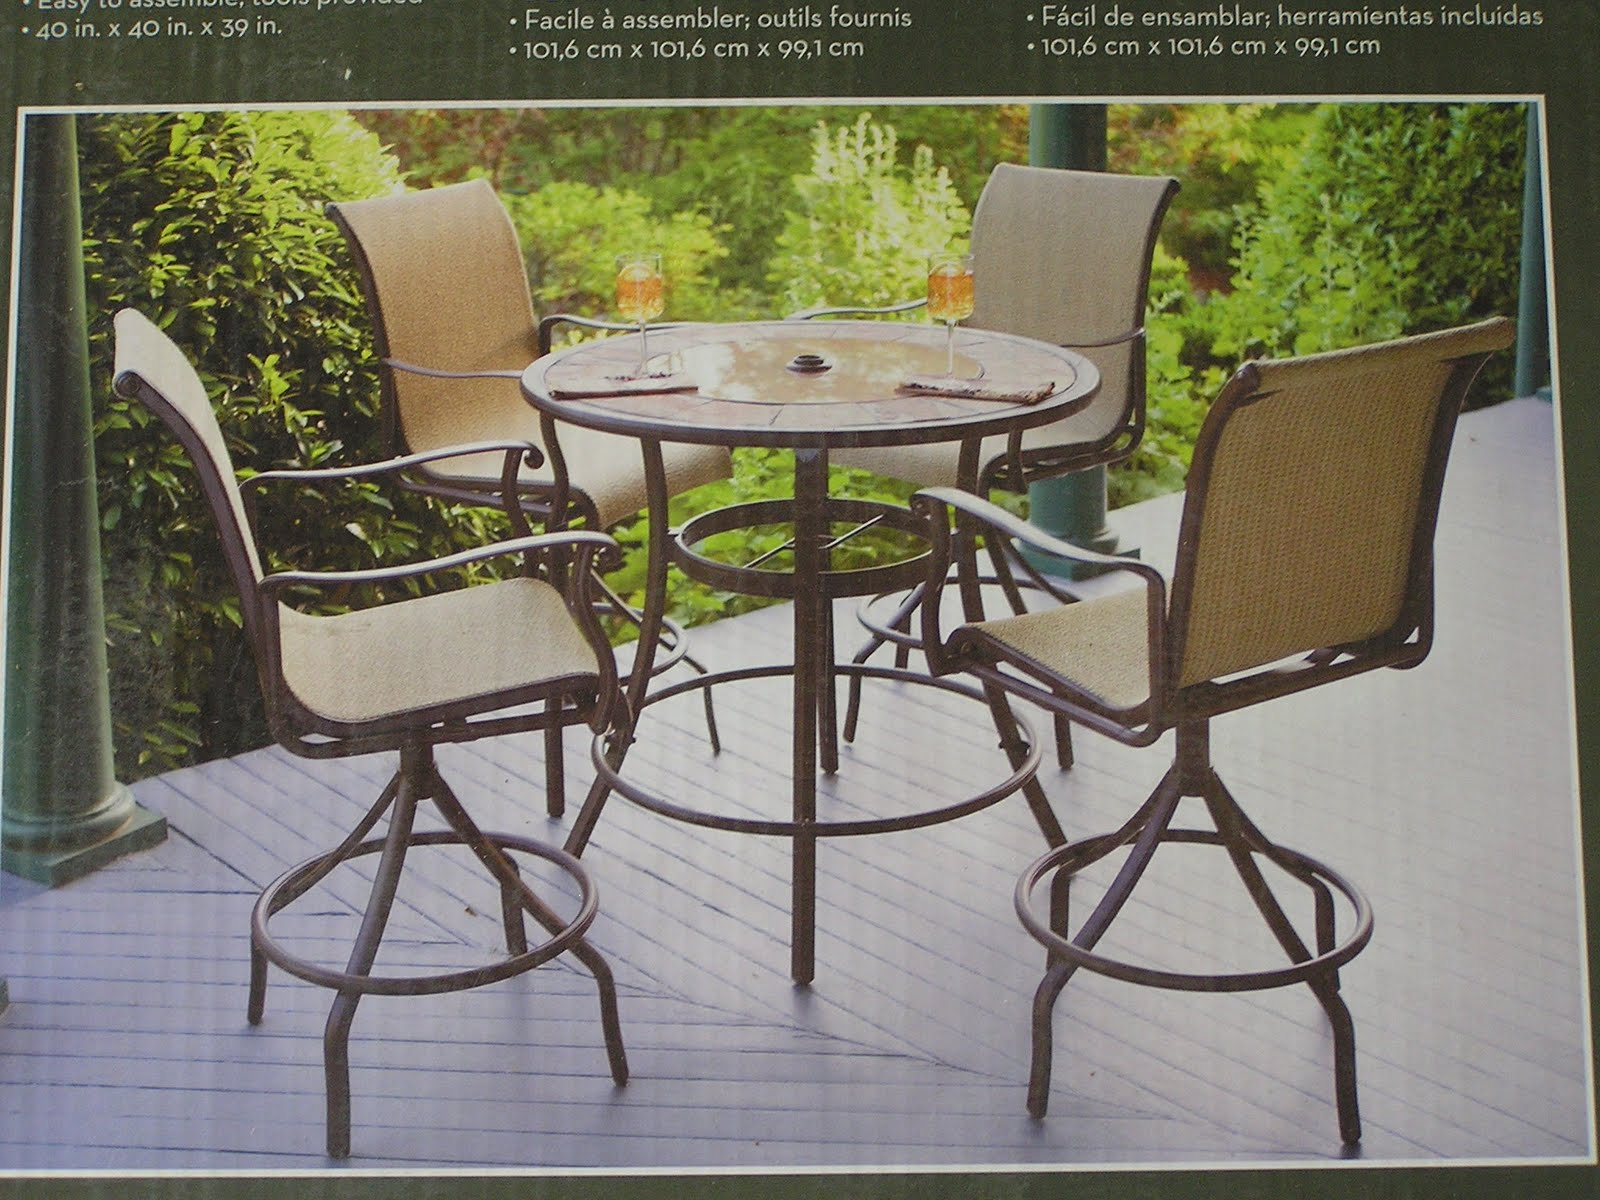 Patio table set patio design ideas for Patio table set